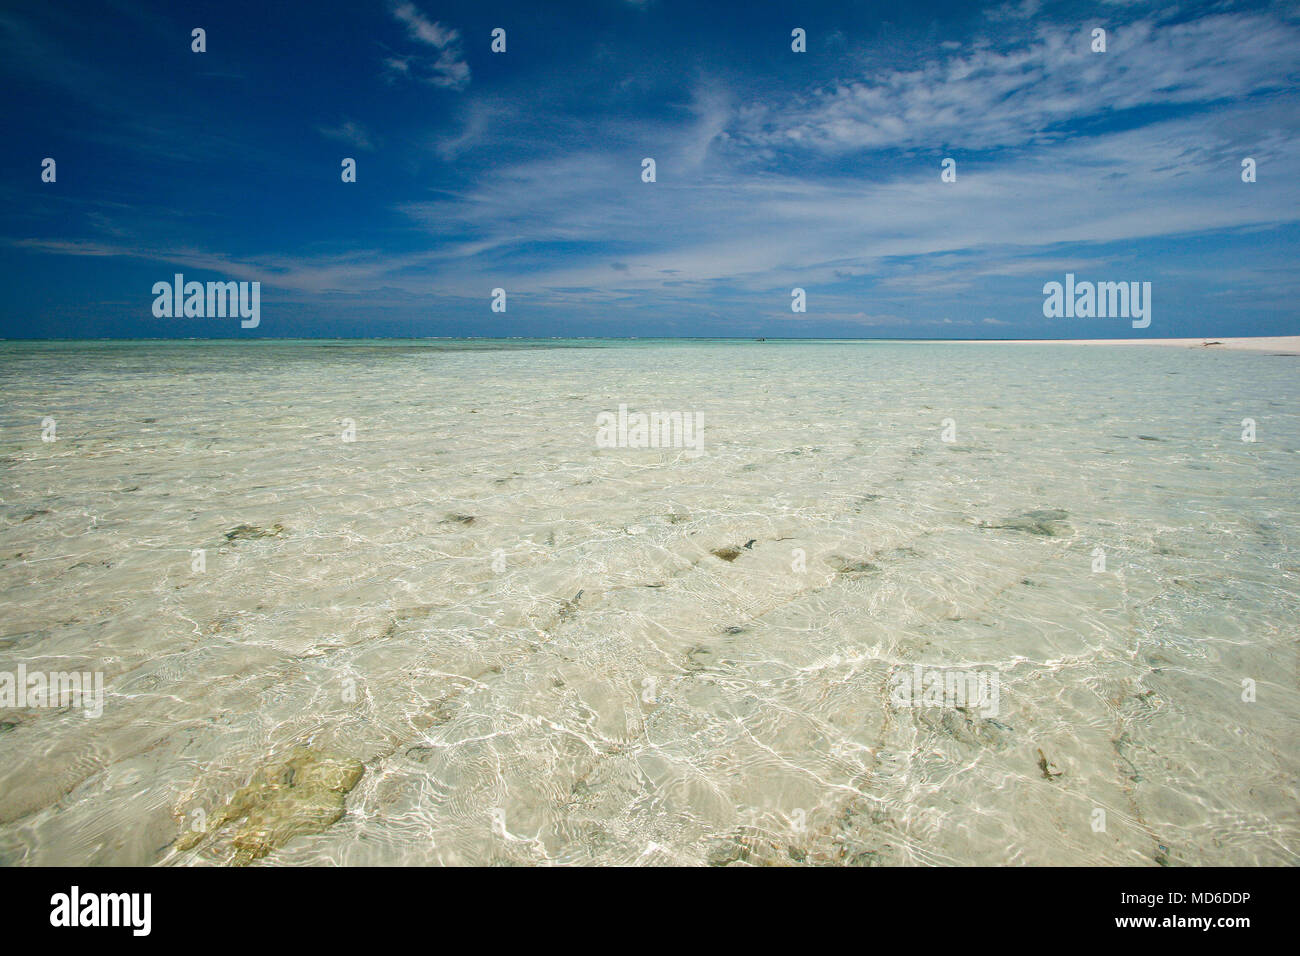 Island in Gorontalo. Sulawesi. Indonesia - Stock Image